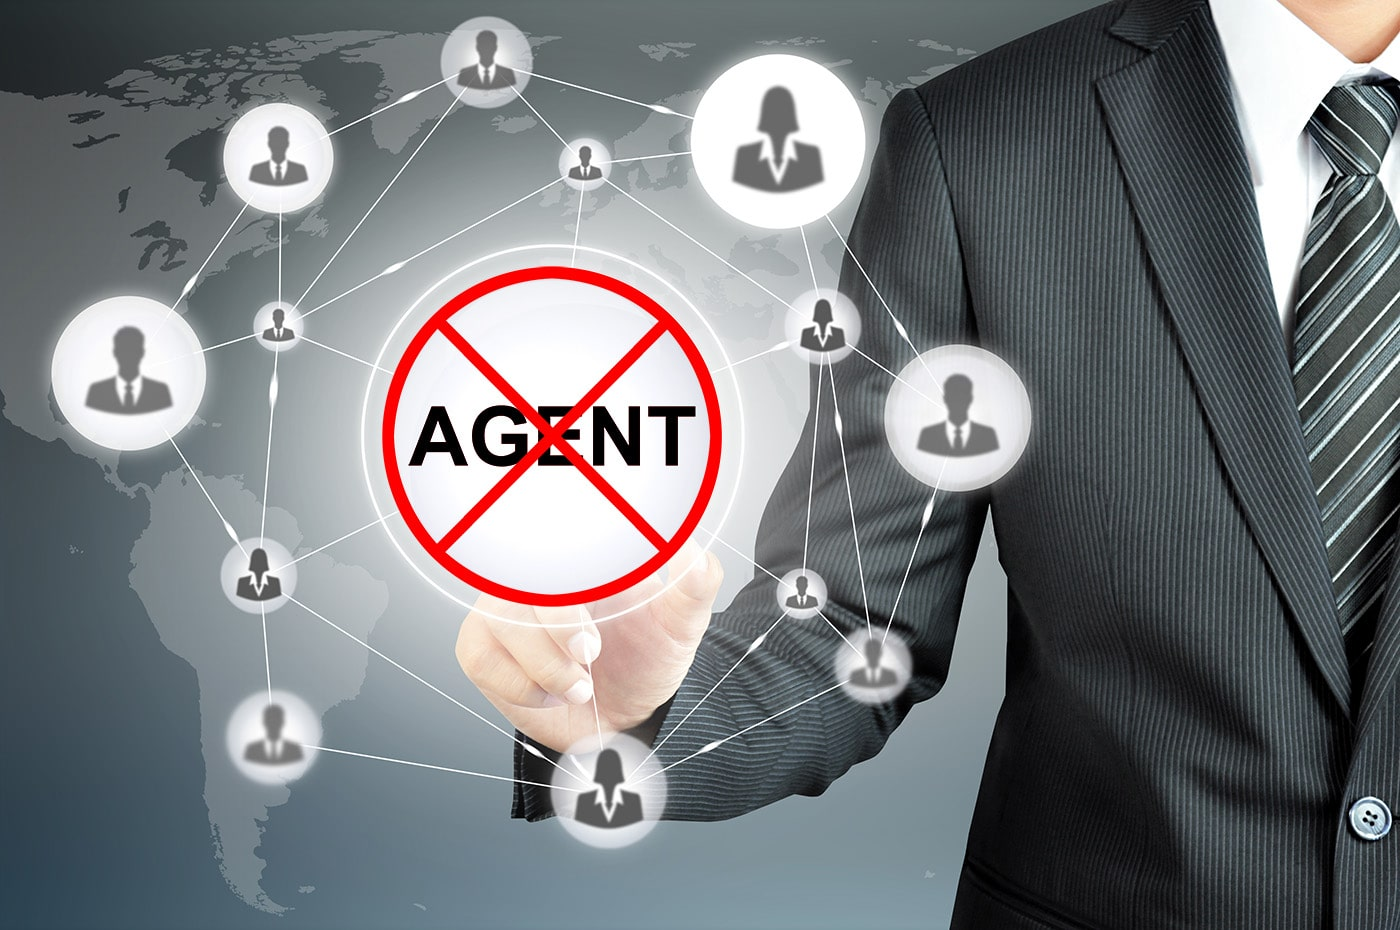 No middleman agencies